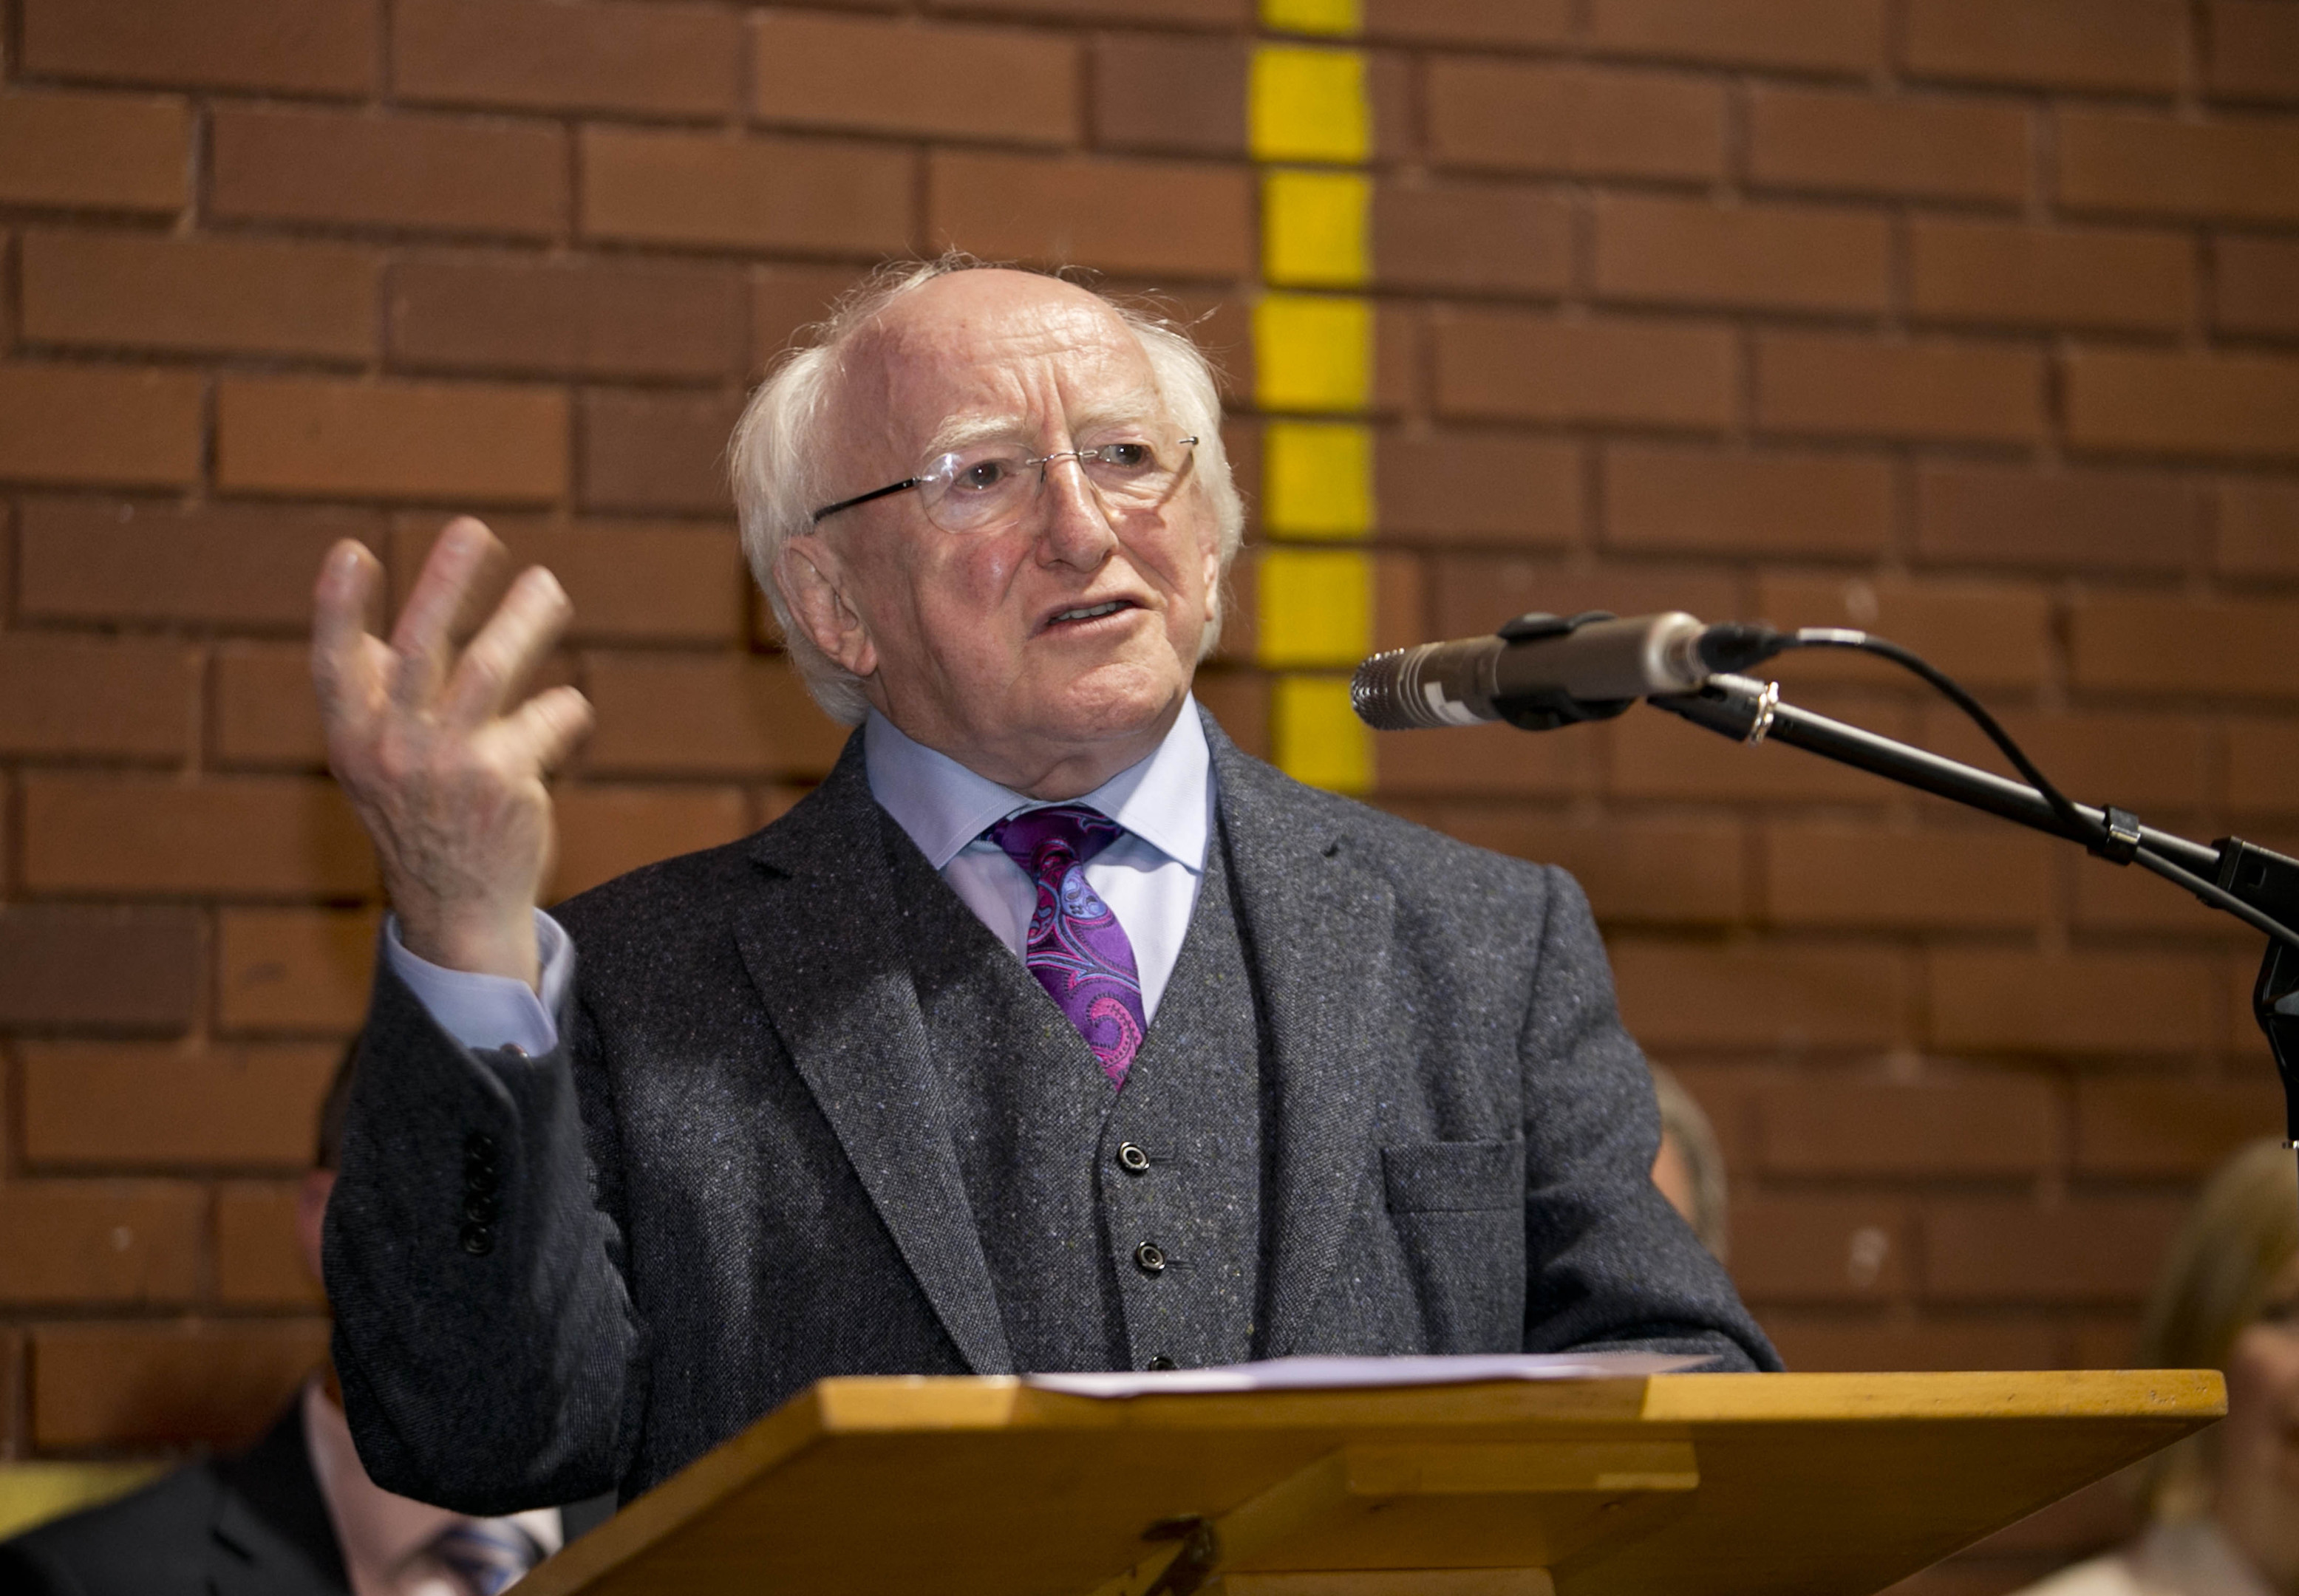 President Michael D Higgins during a visit to the the Govanhill Neighbourhood Centre, in Glasgow.